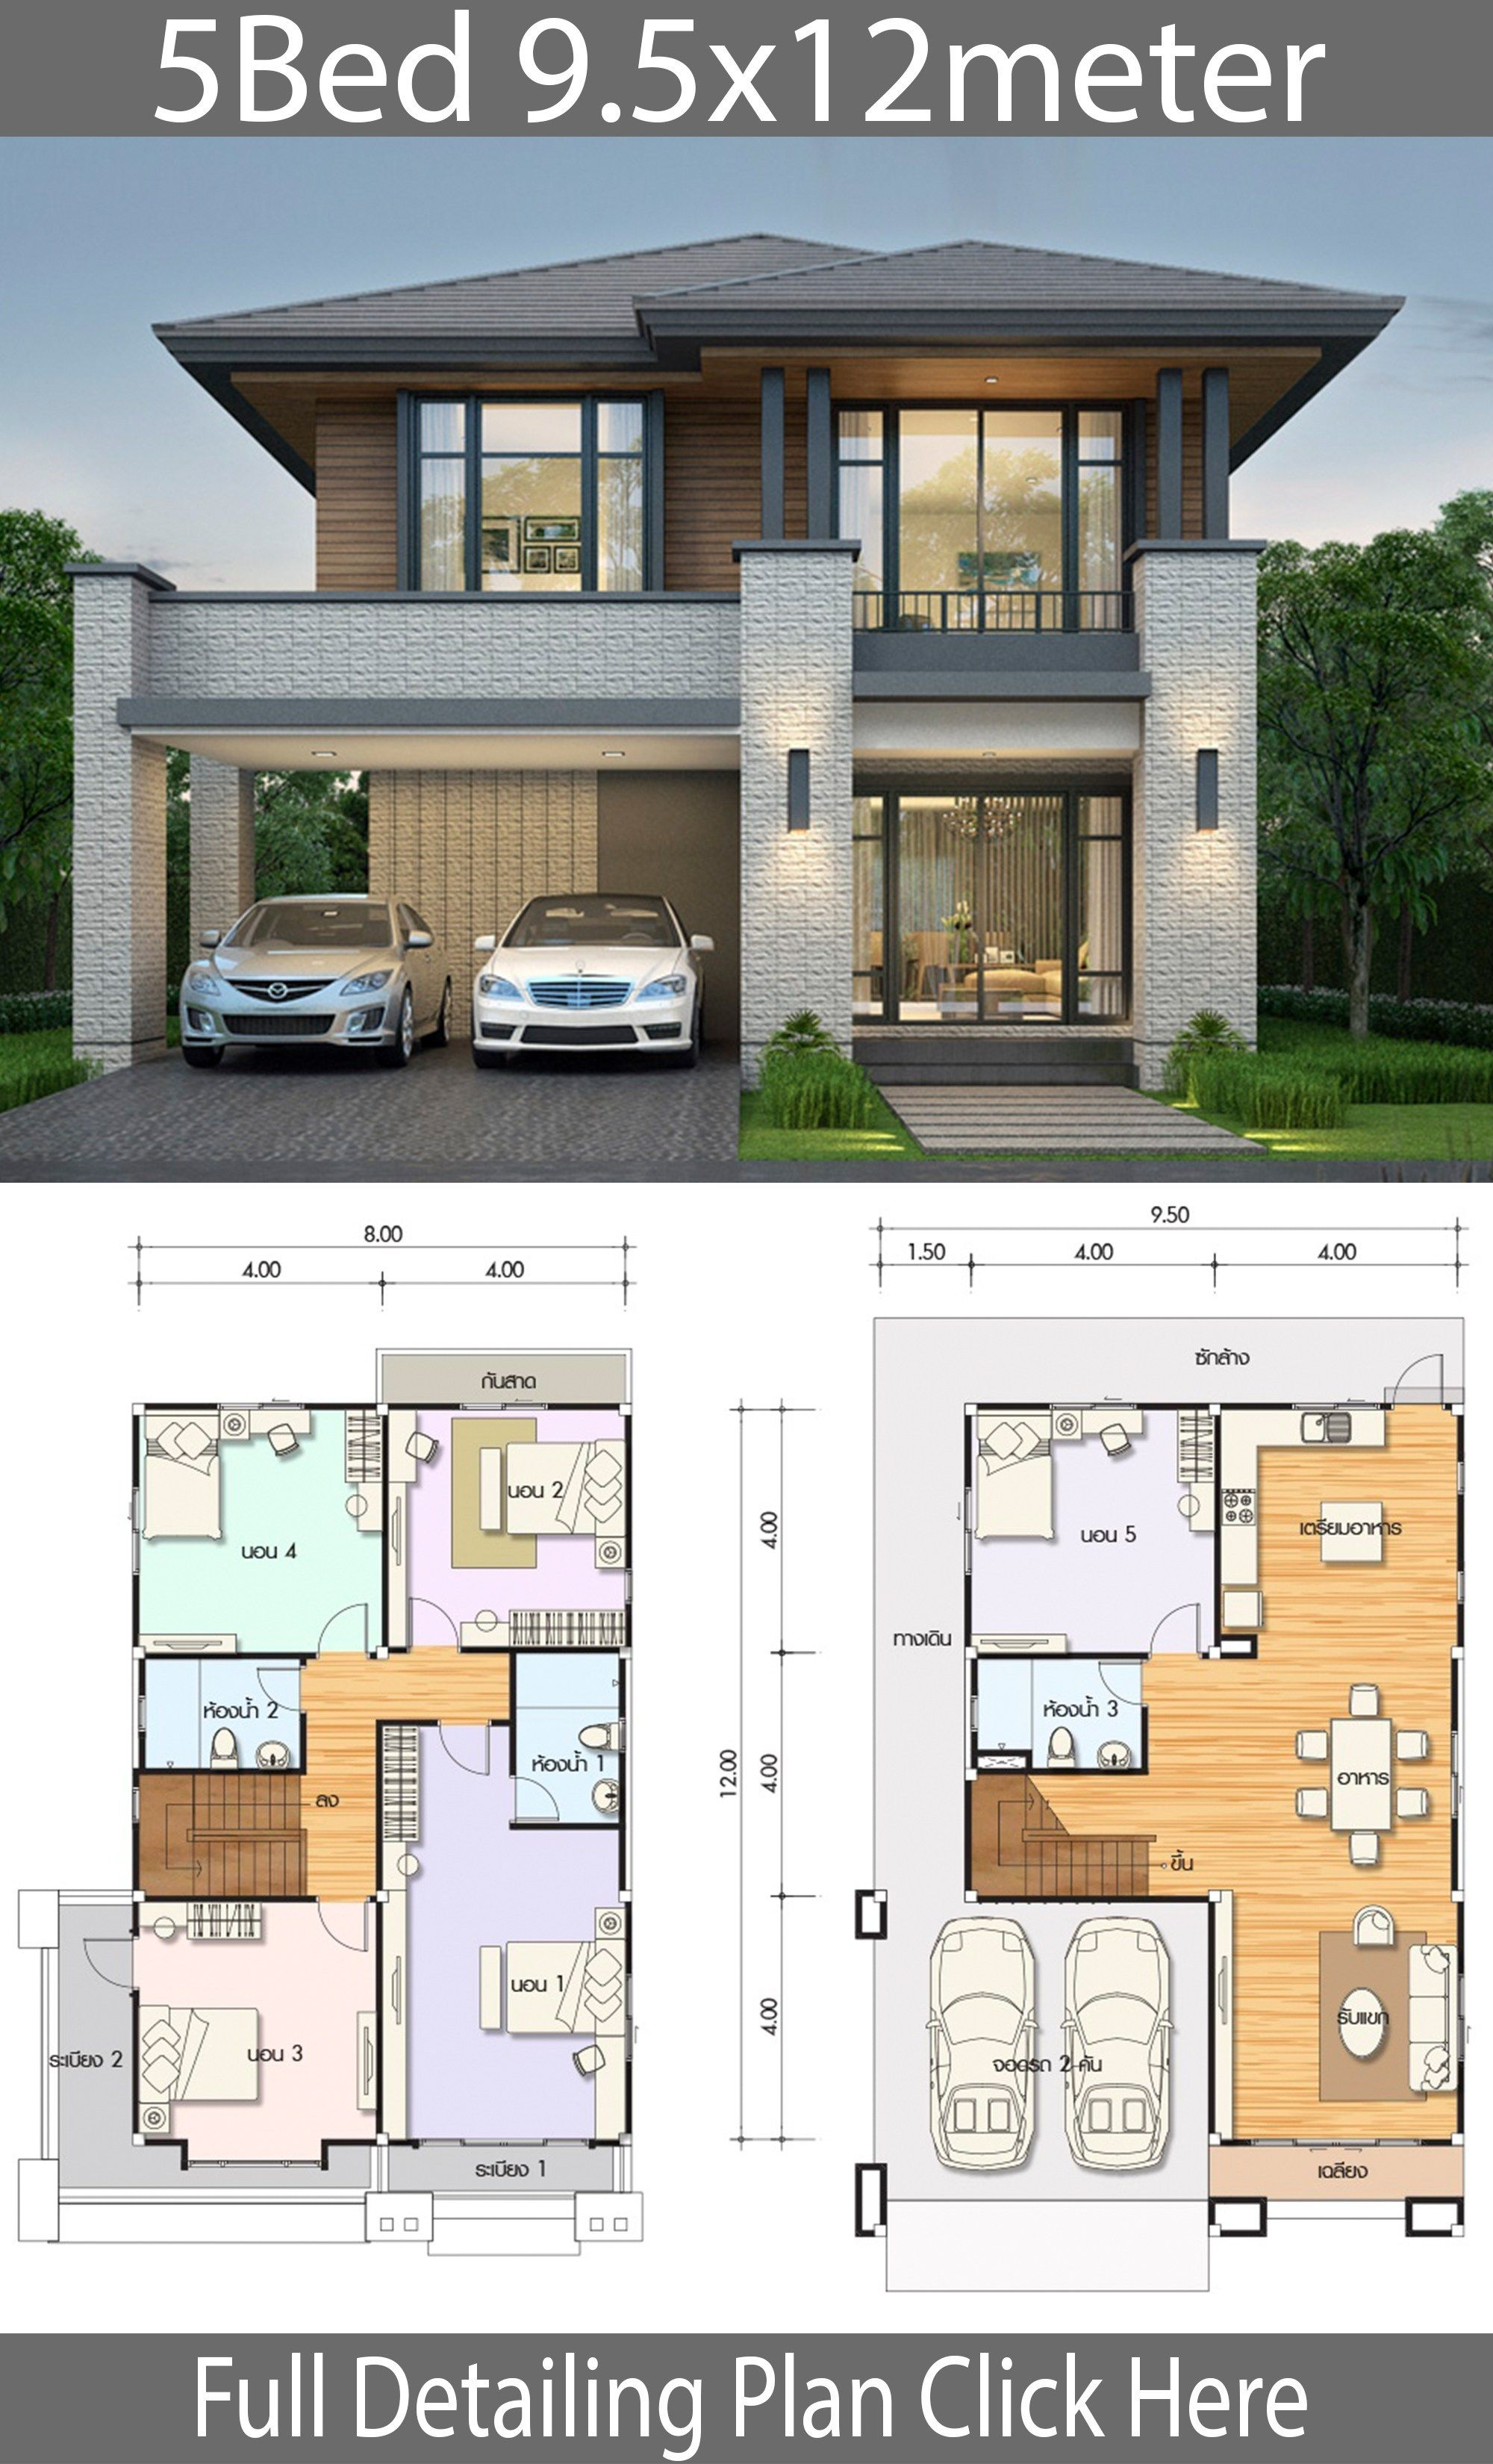 House Design Plan 16 5x10m With 5 Bedrooms Home Design With Plansearch House Projects Architecture Architectural House Plans House Designs Exterior